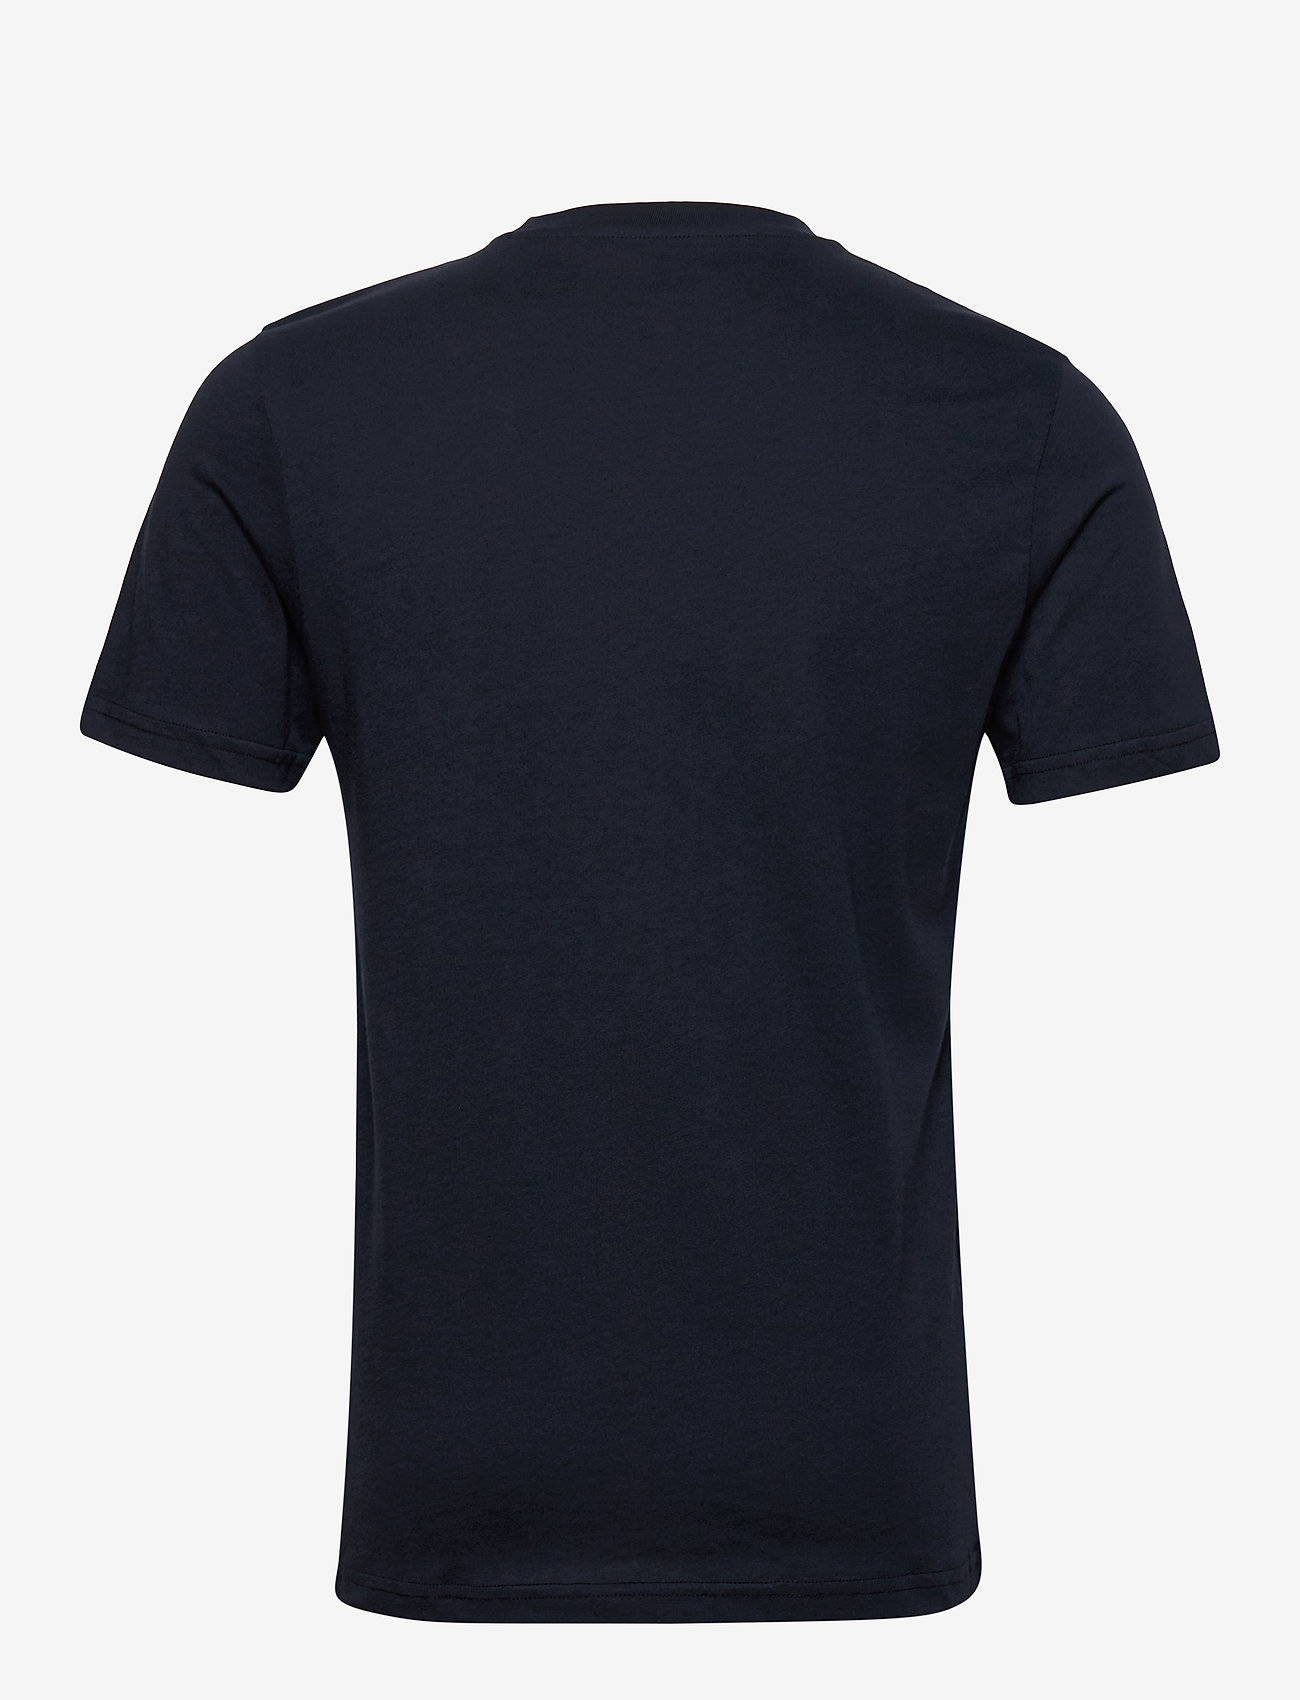 Lee Jeans - WOBBLY LOGO TEE - short-sleeved t-shirts - navy drop - 1